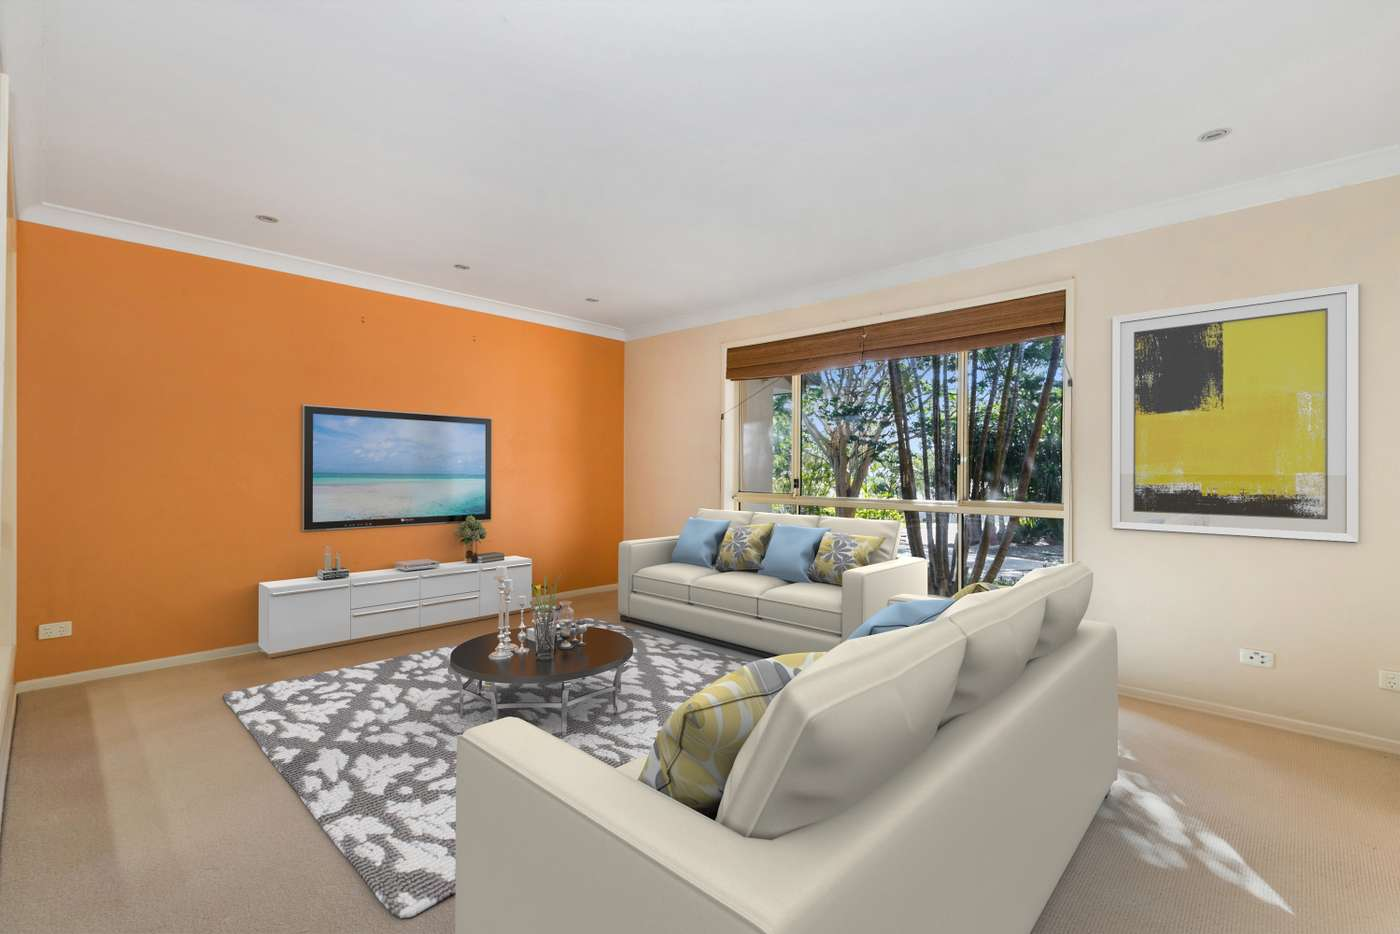 Fifth view of Homely house listing, 40 Ironbark Place, Bellbowrie QLD 4070